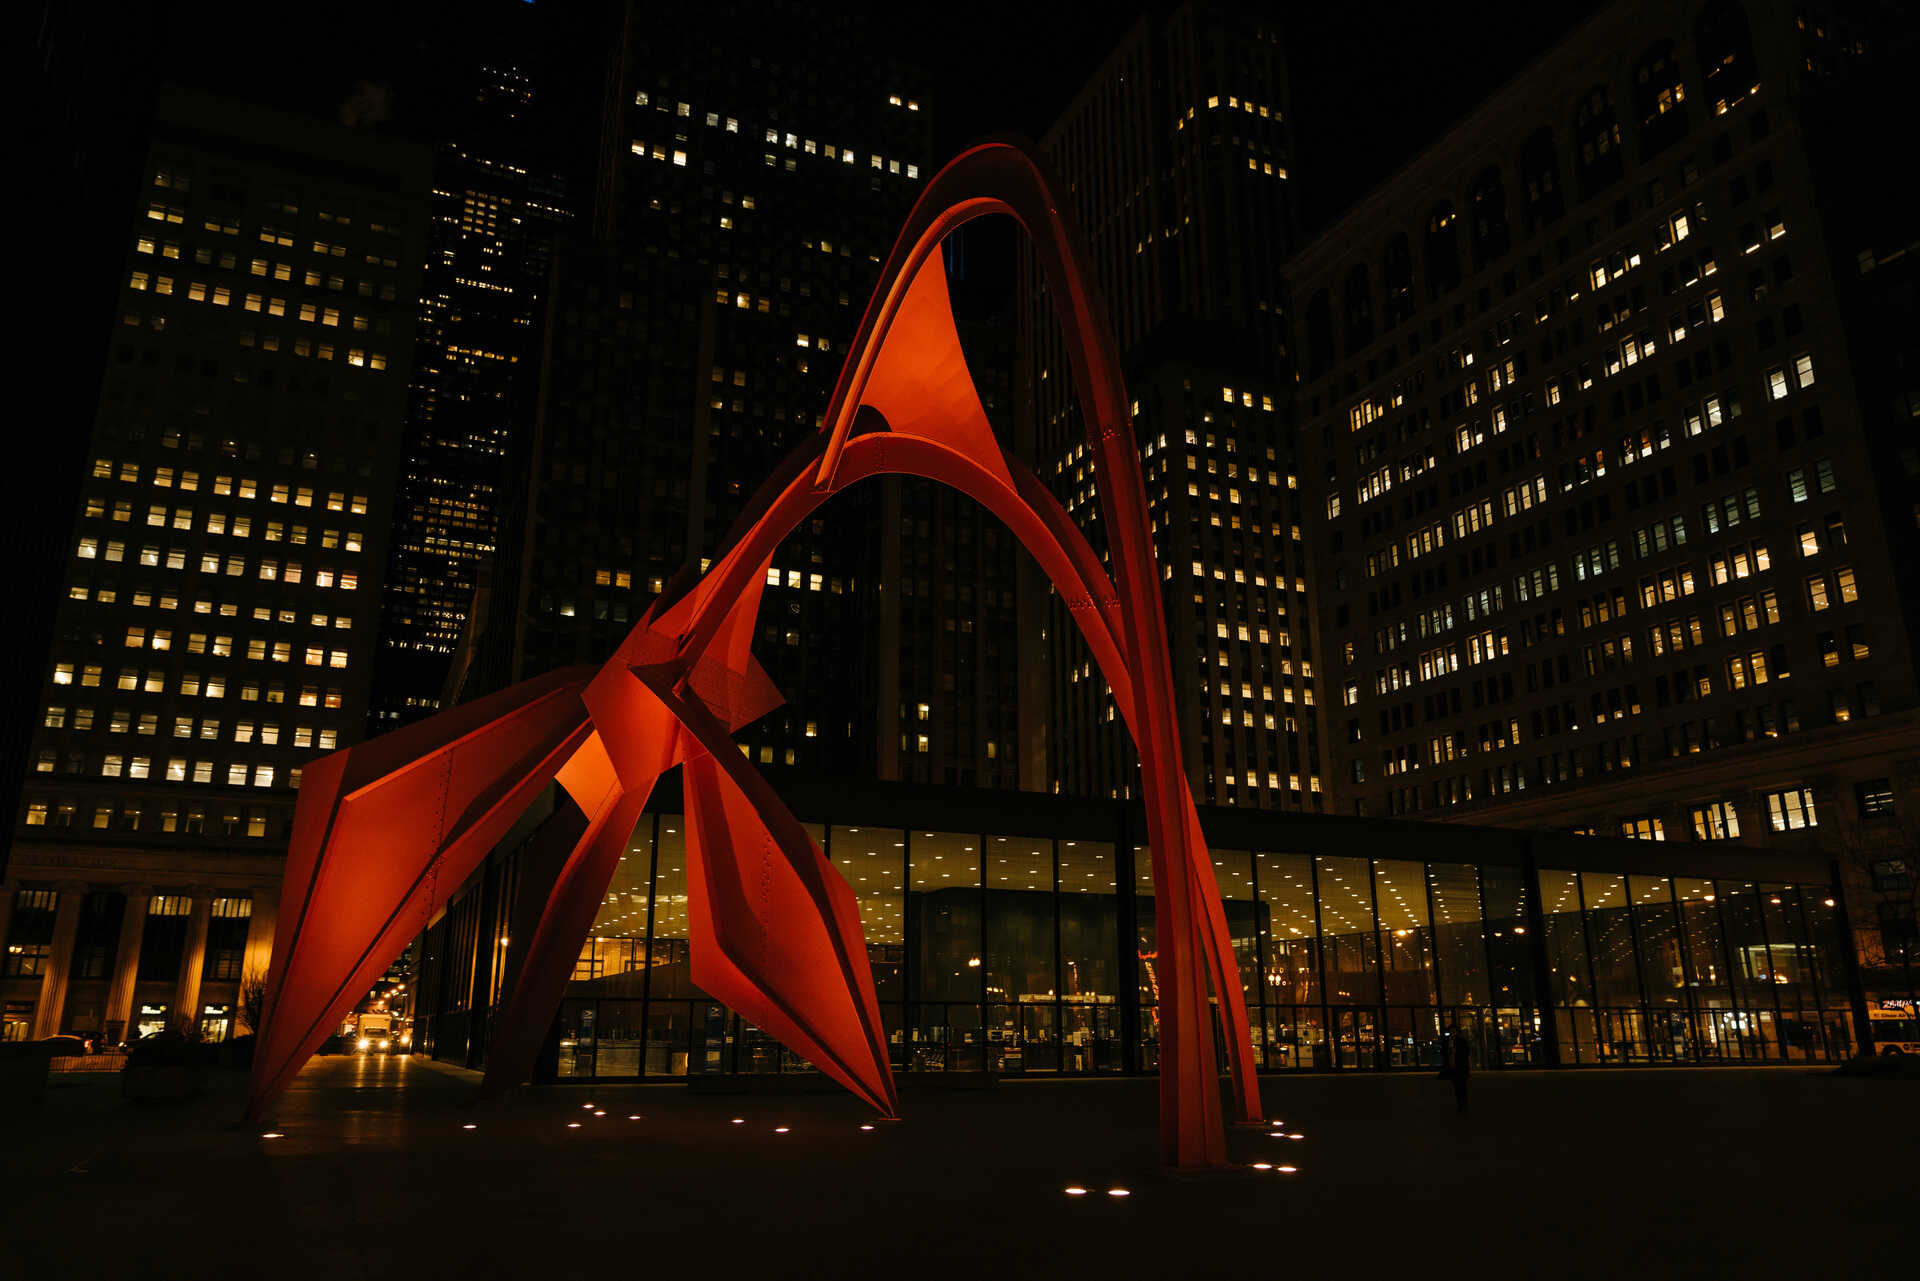 The Flamingo by Alexander Calder in Chicago, Illinois